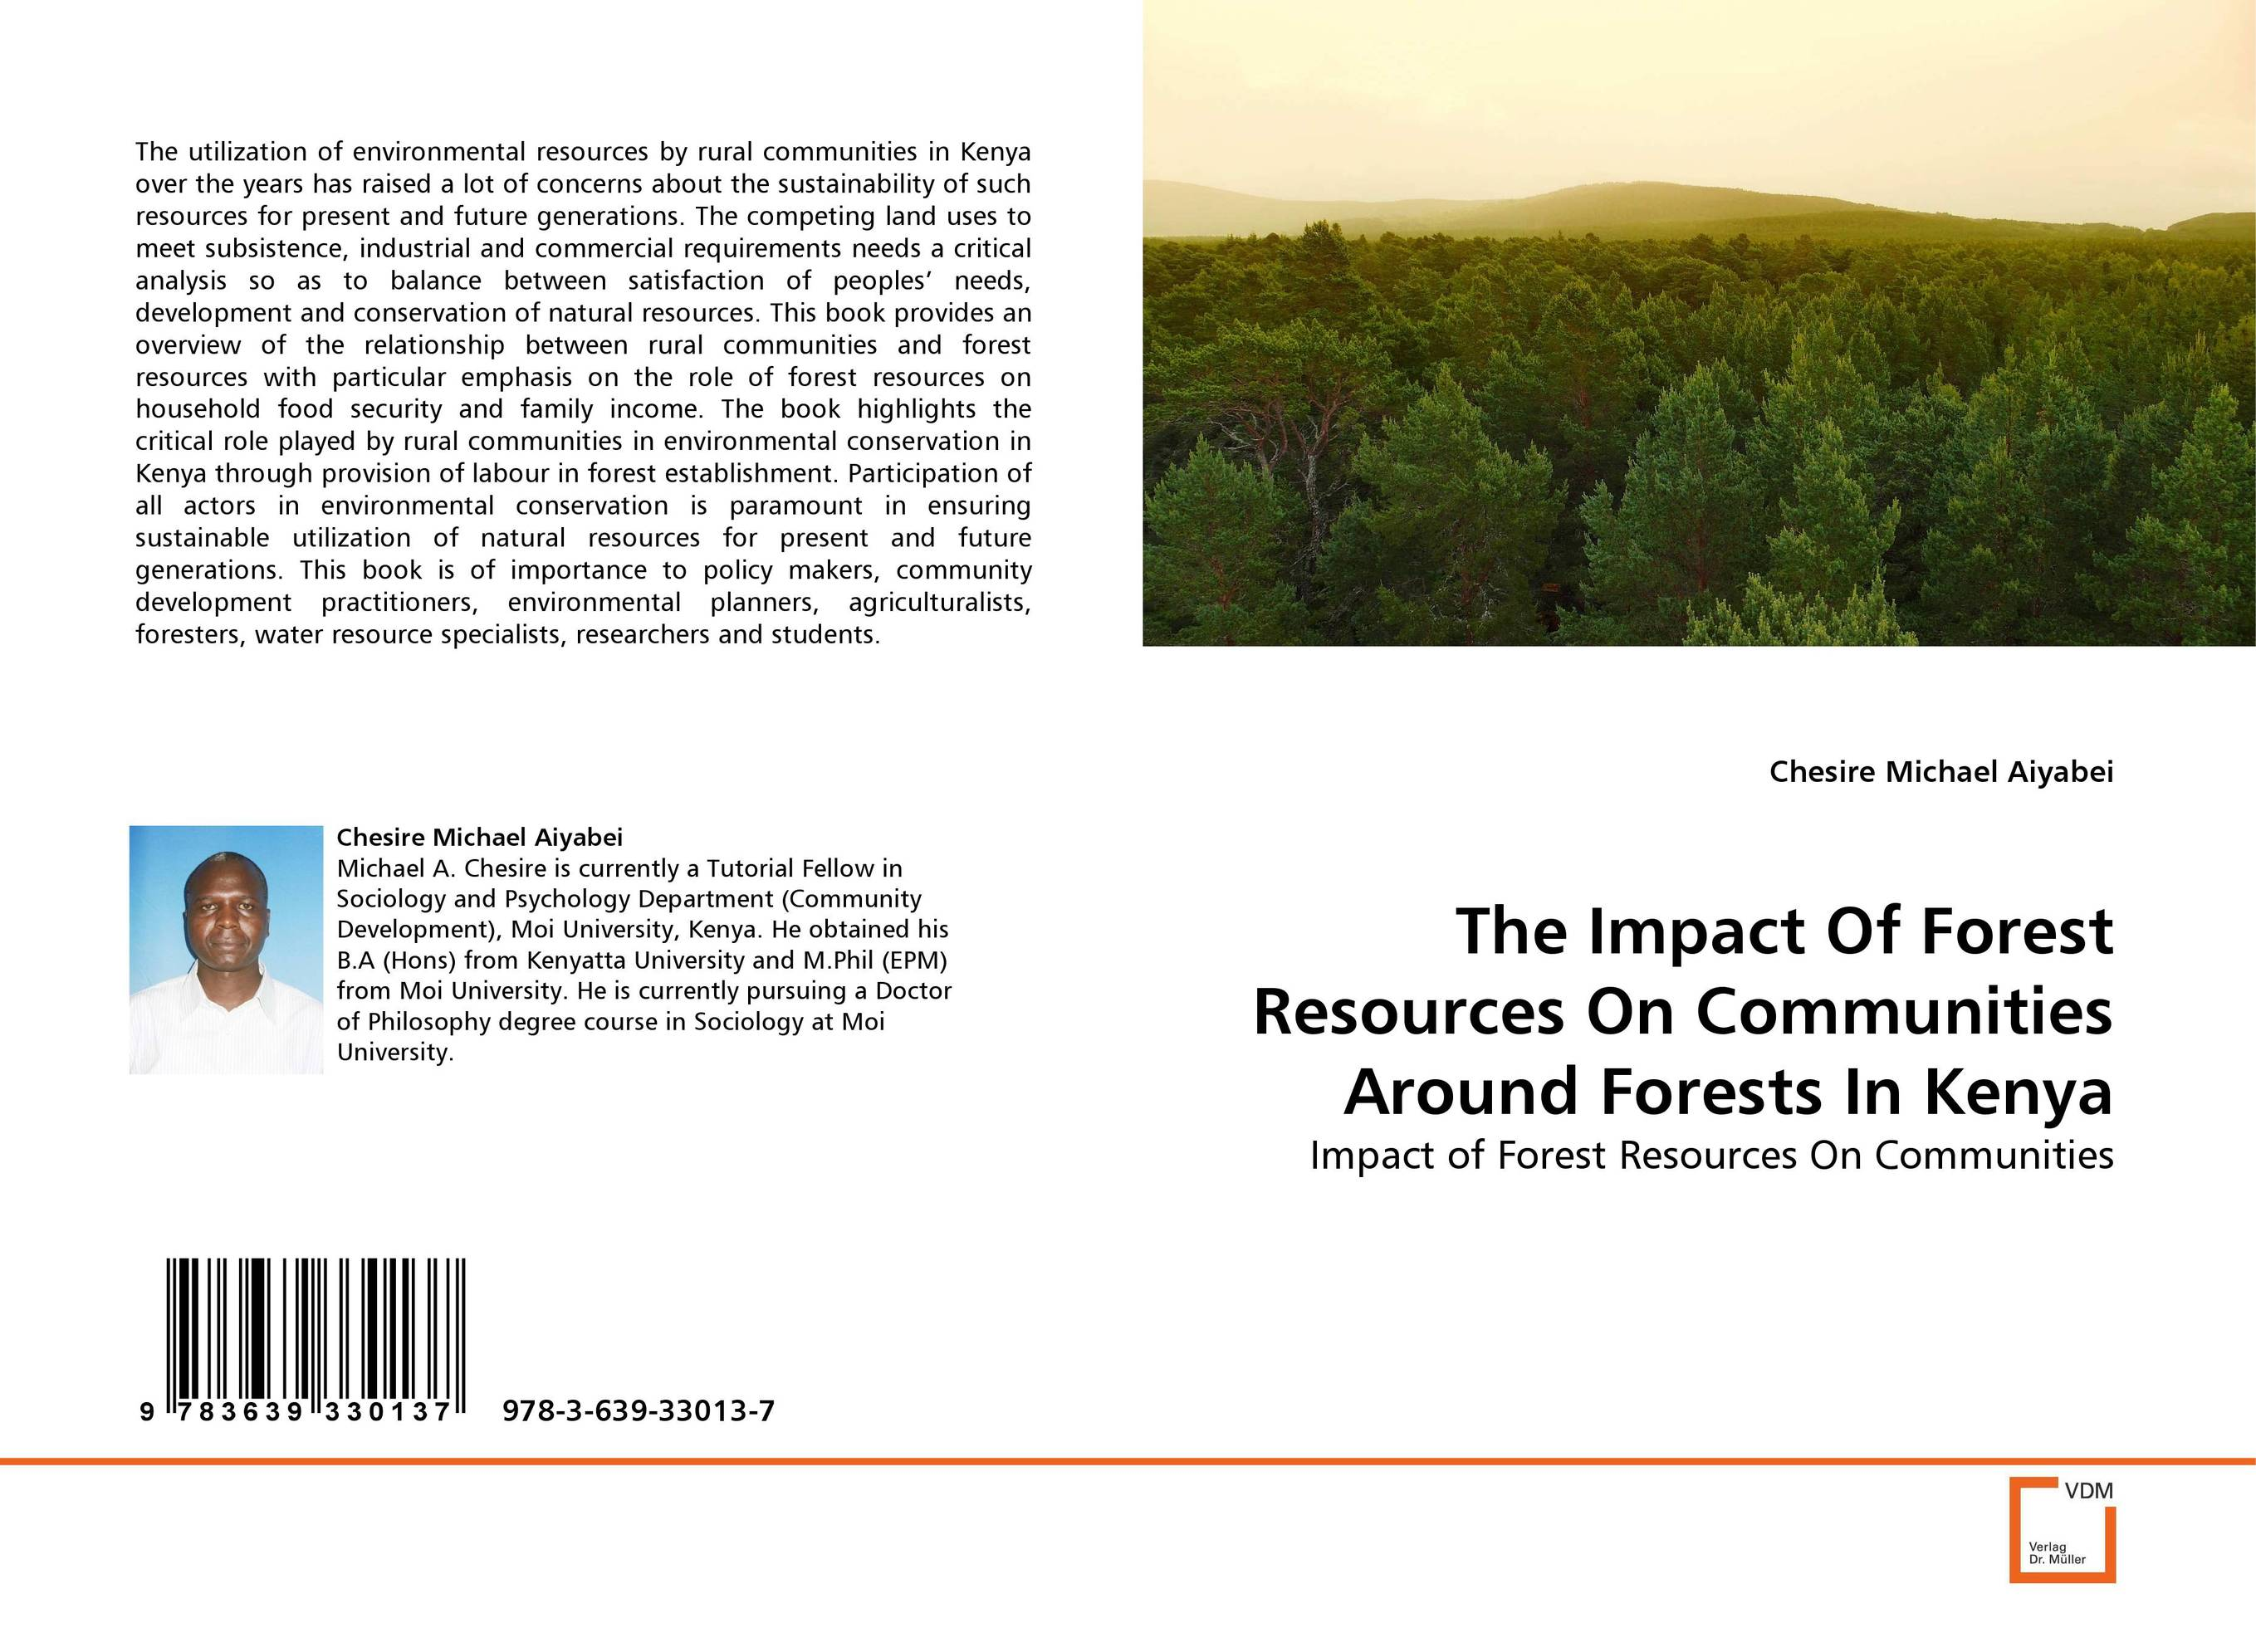 The Impact Of Forest Resources On Communities Around Forests In Kenya alex kisingo impact of heathland management approaches on ground beetle communities